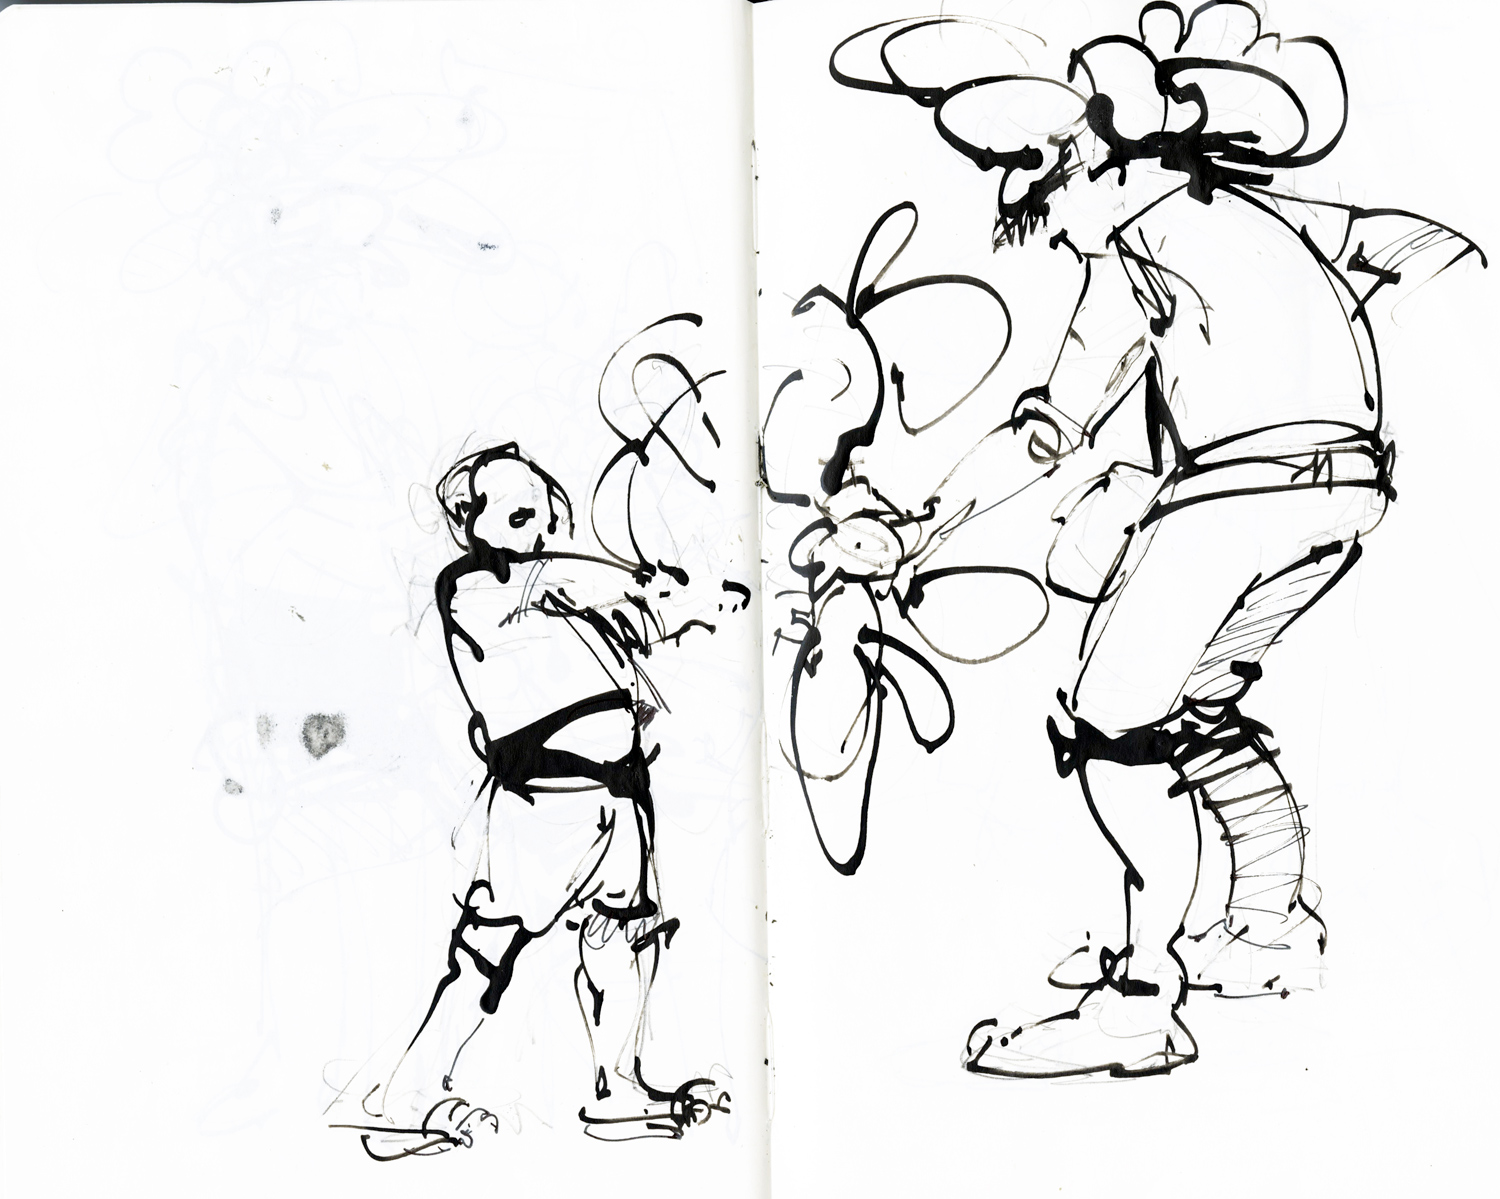 A very cranky kid trying to take a balloon animalfrom a very hot and tired street performer.